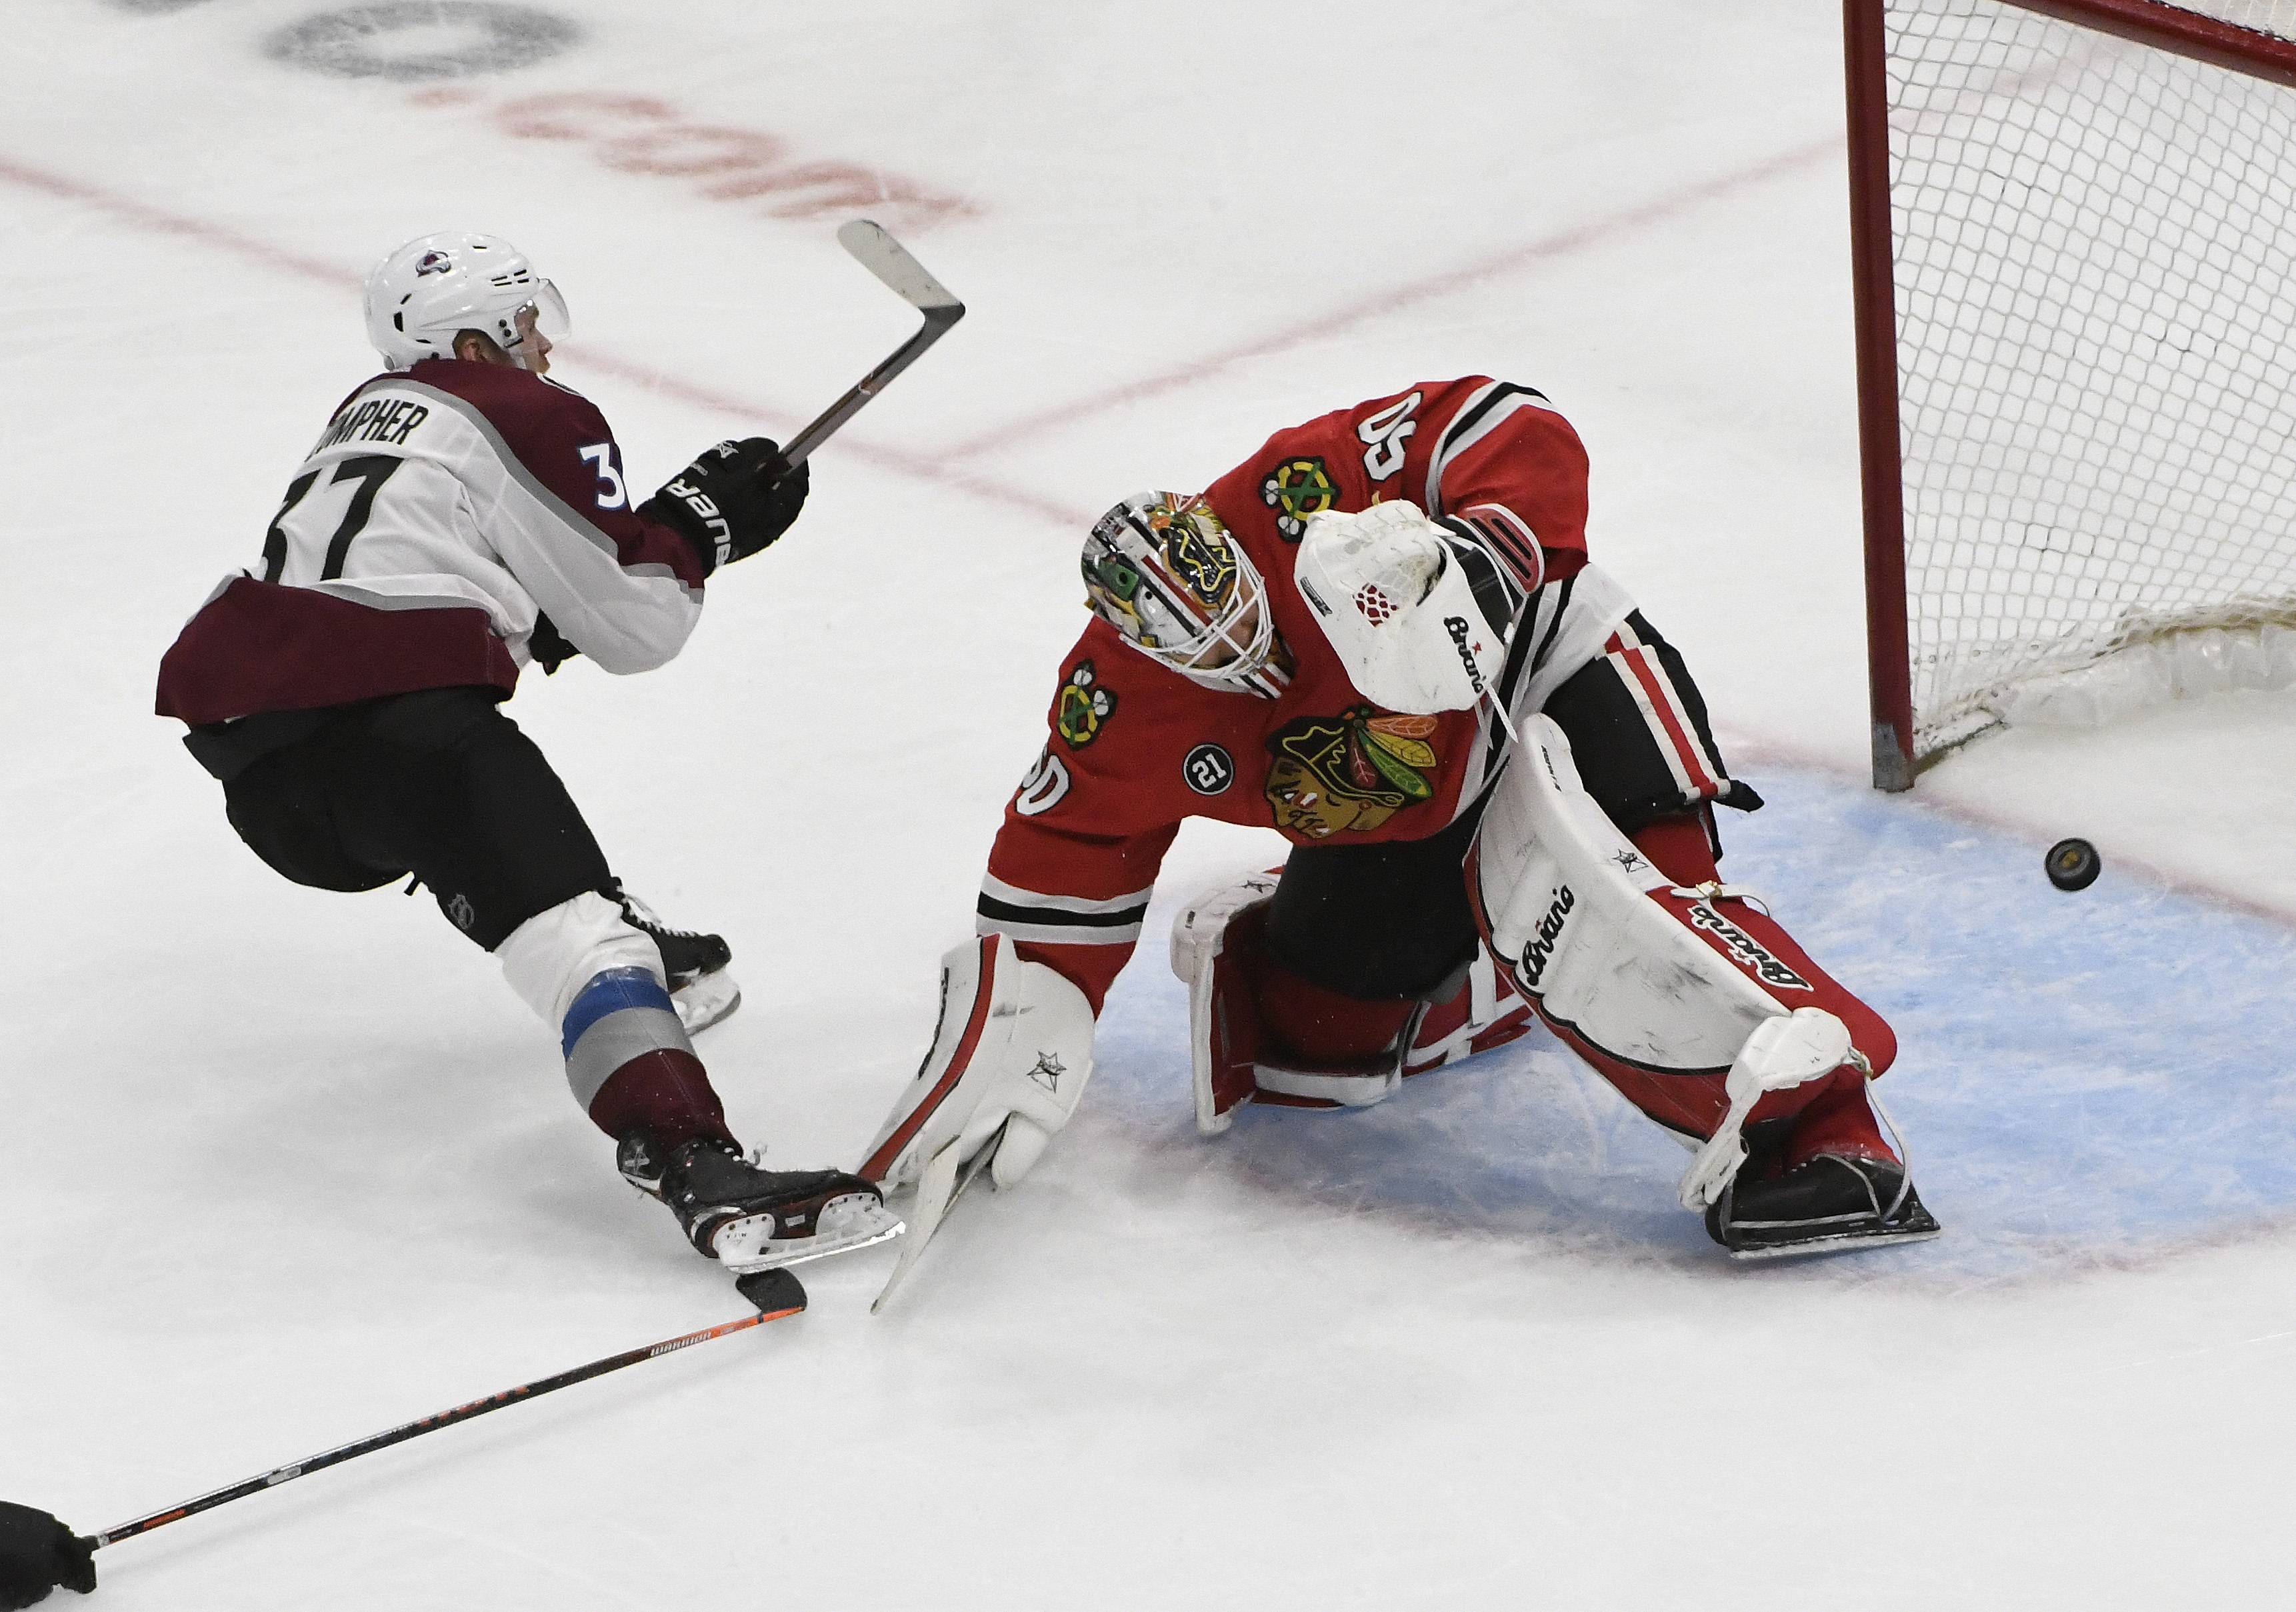 Colorado Avalanche left wing J.T. Compher (37) scores a goal on Chicago Blackhawks goaltender Collin Delia (60) during the third period of an NHL hockey game Friday, Feb. 22, 2019, in Chicago. (AP Photo/David Banks